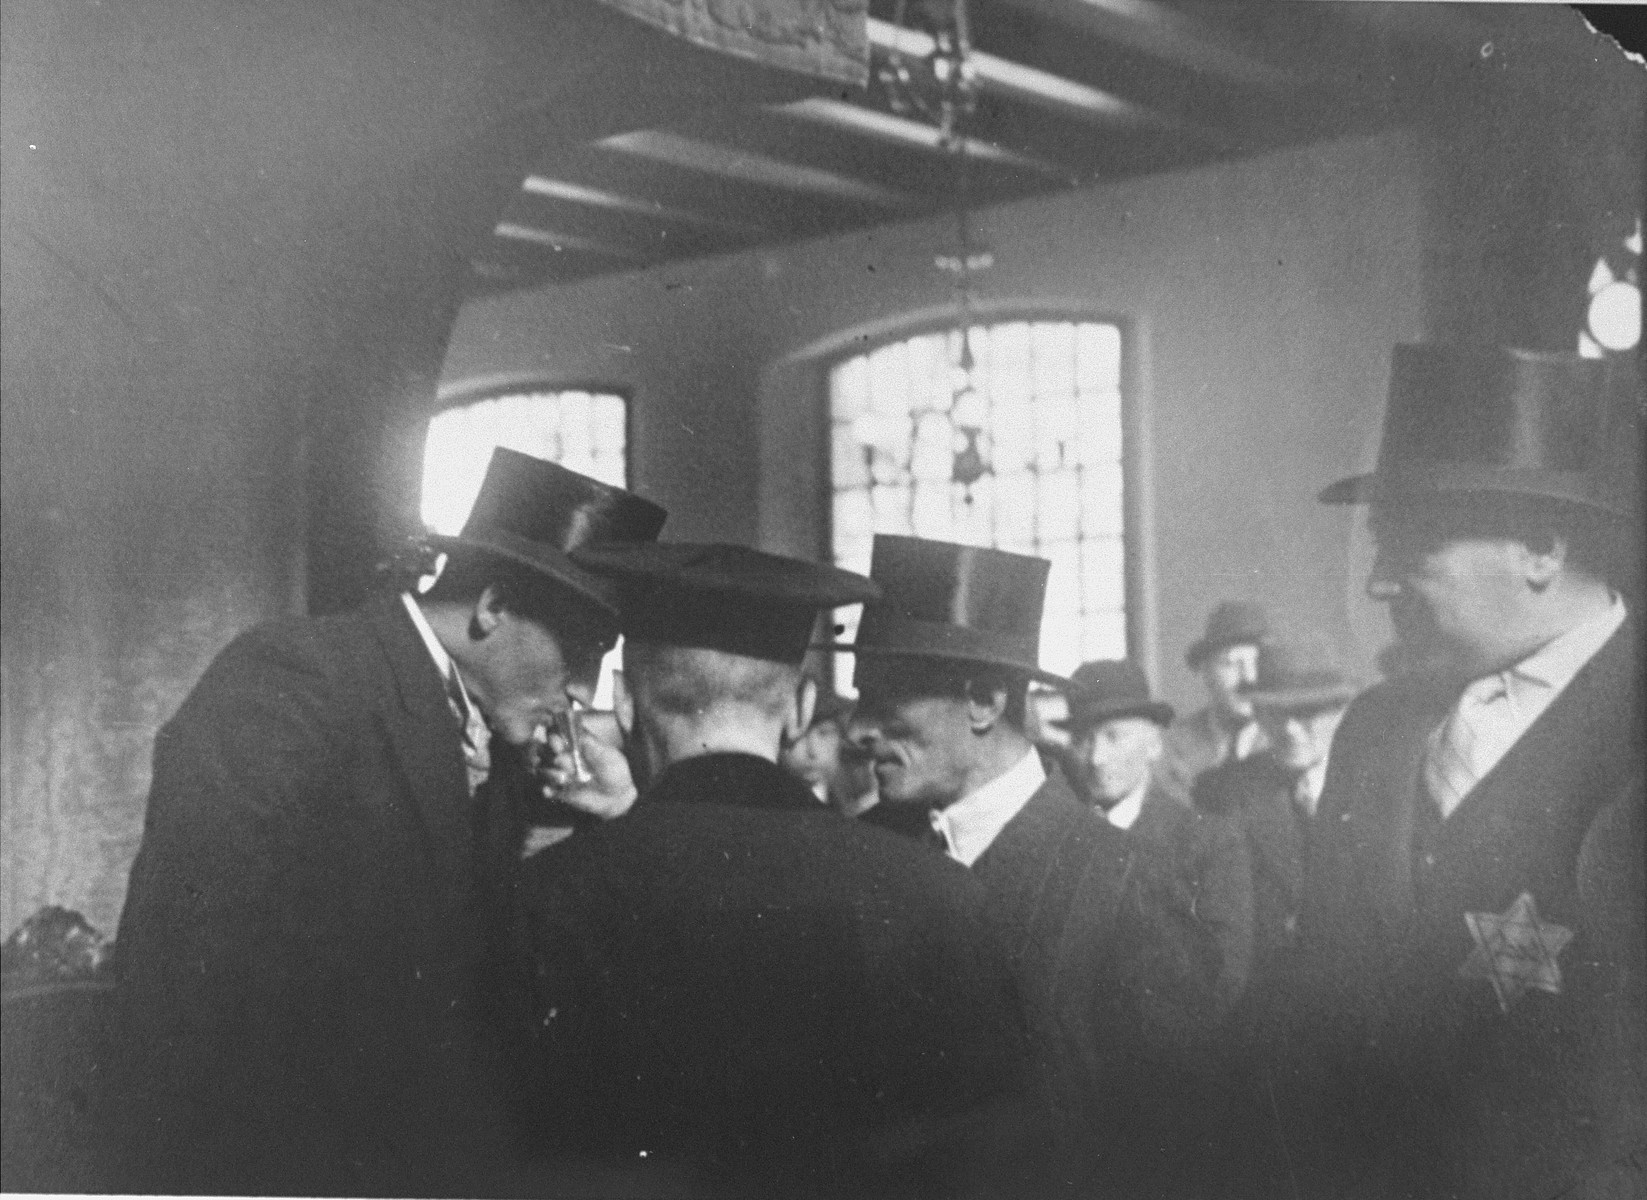 The bridegroom Herman de Leeuw is given a sip of wine during his wedding ceremony at the Sephardic synagogue in the Jewish quarter of Amsterdam.